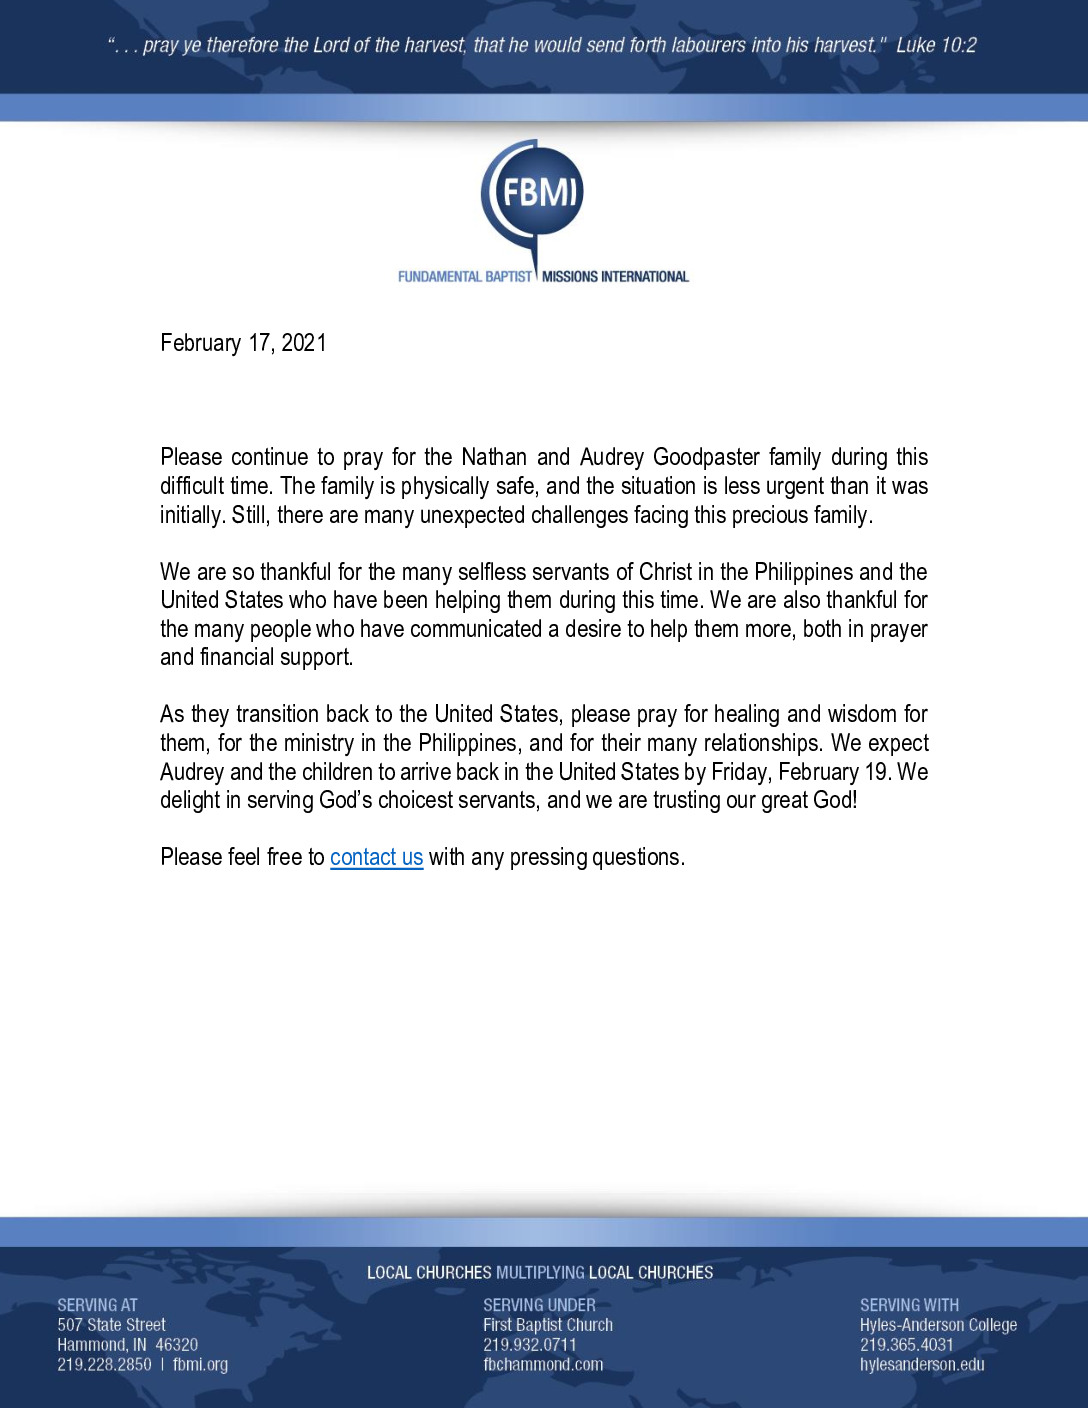 thumbnail of FBMI February 2021 Update on Nathan Goodpaster